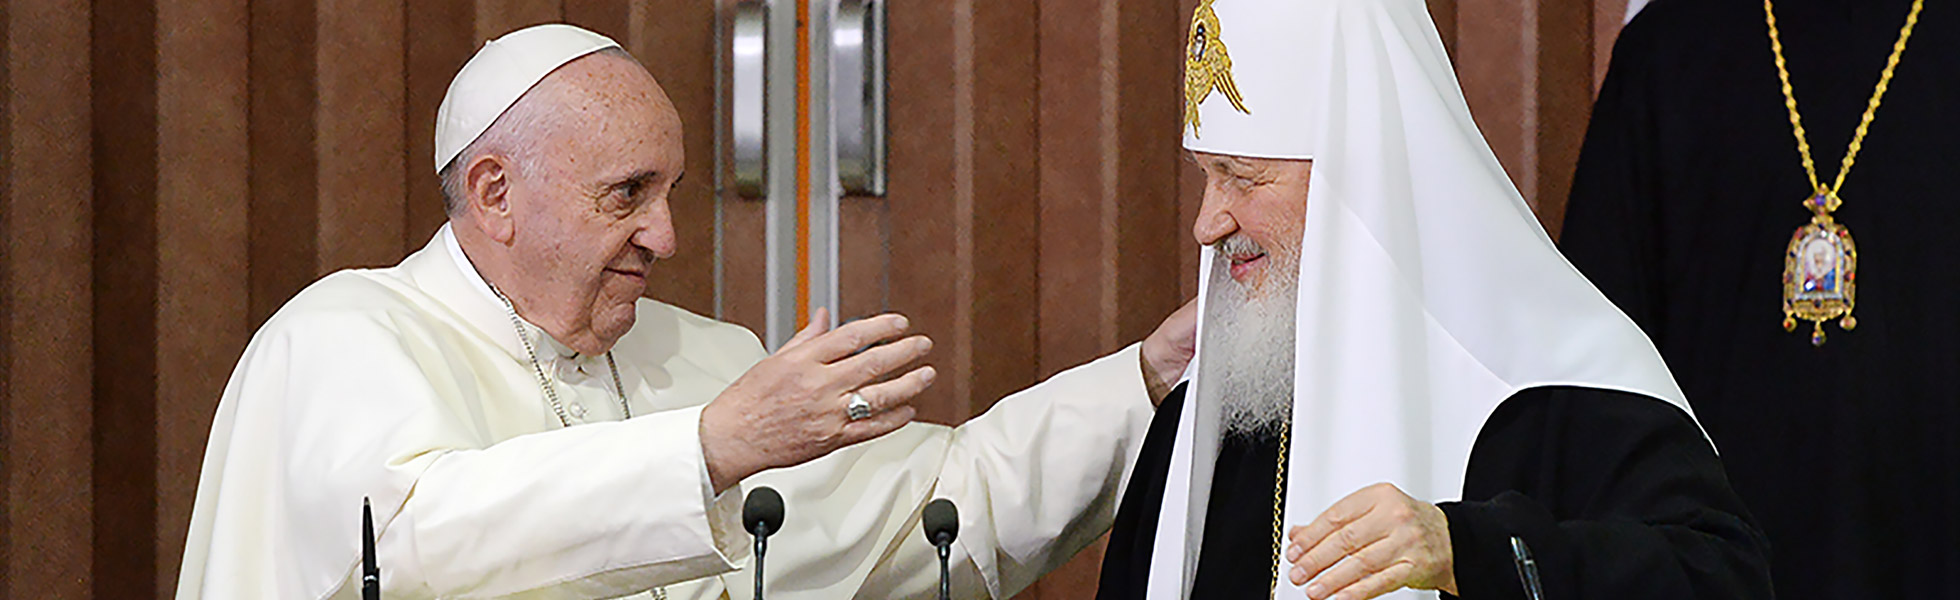 """ORTHODOX AND CATHOLICS: """"SAVING UNBORN CHILDREN TOGETHER IN THE SPIRIT OF CHRIST"""""""